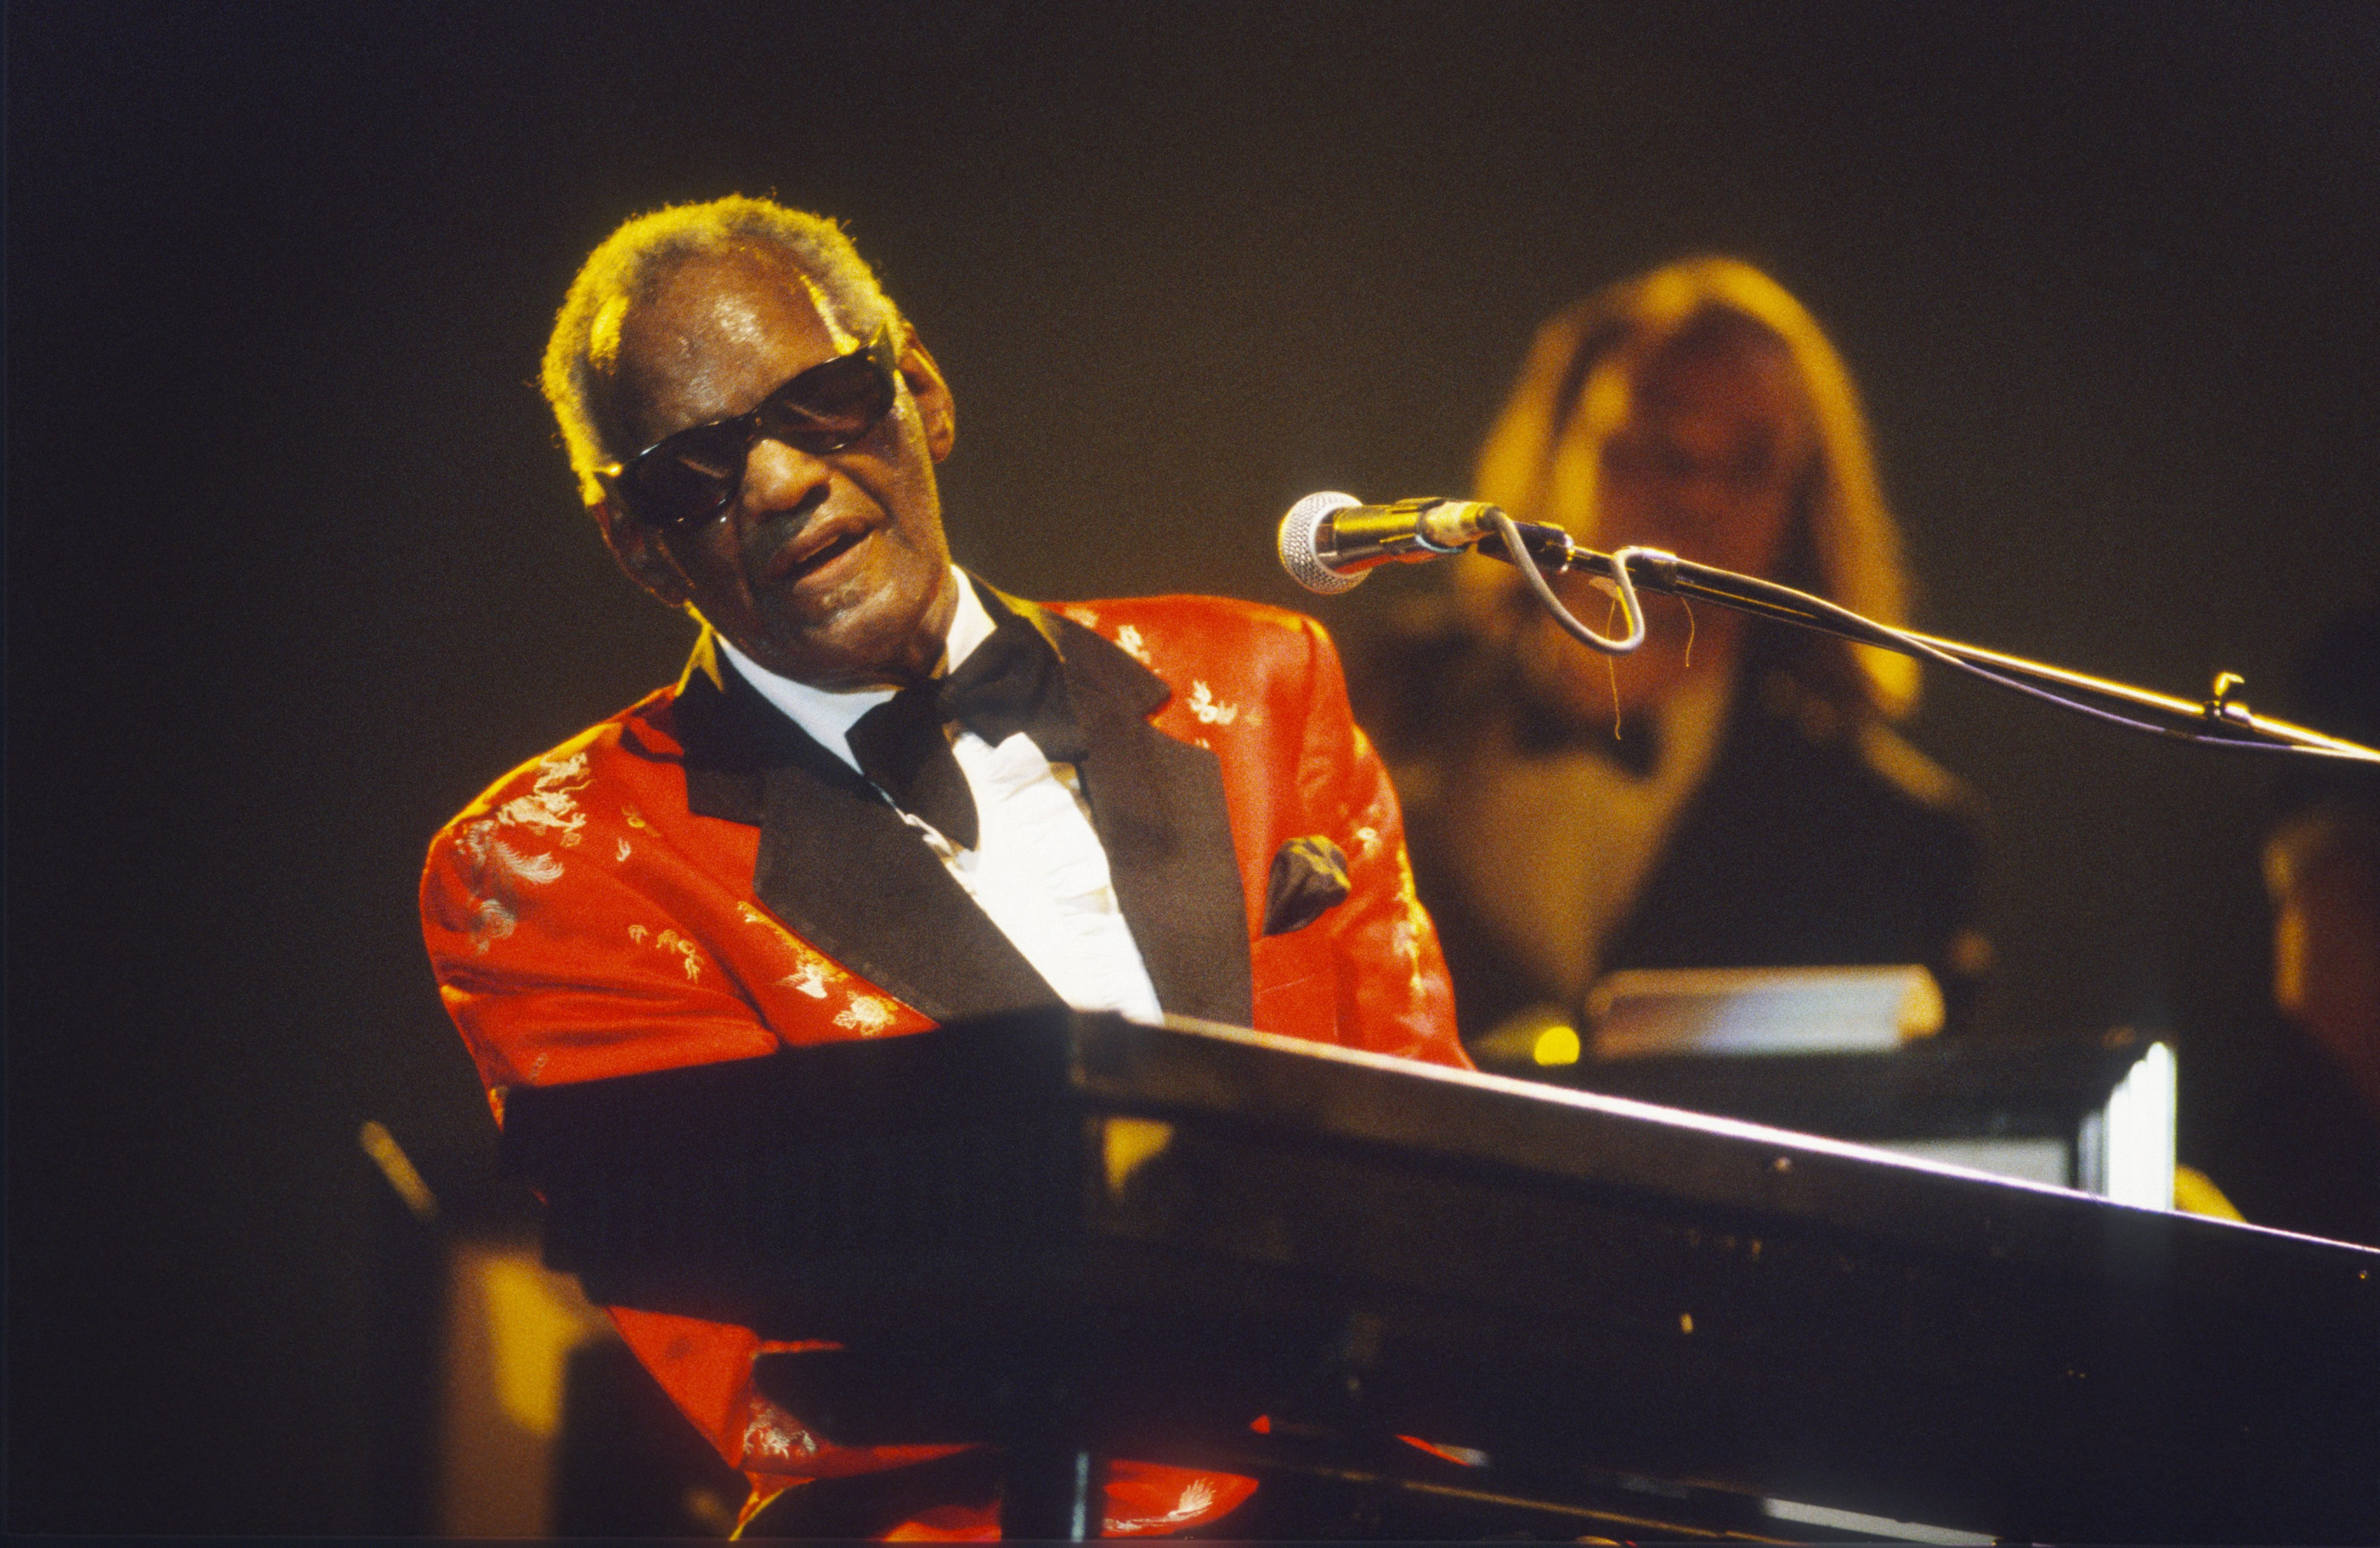 Ray Charles during the Rhythm 'n' Blues Festival at Peer, Belgium circa July 1994. | Source: Getty Images